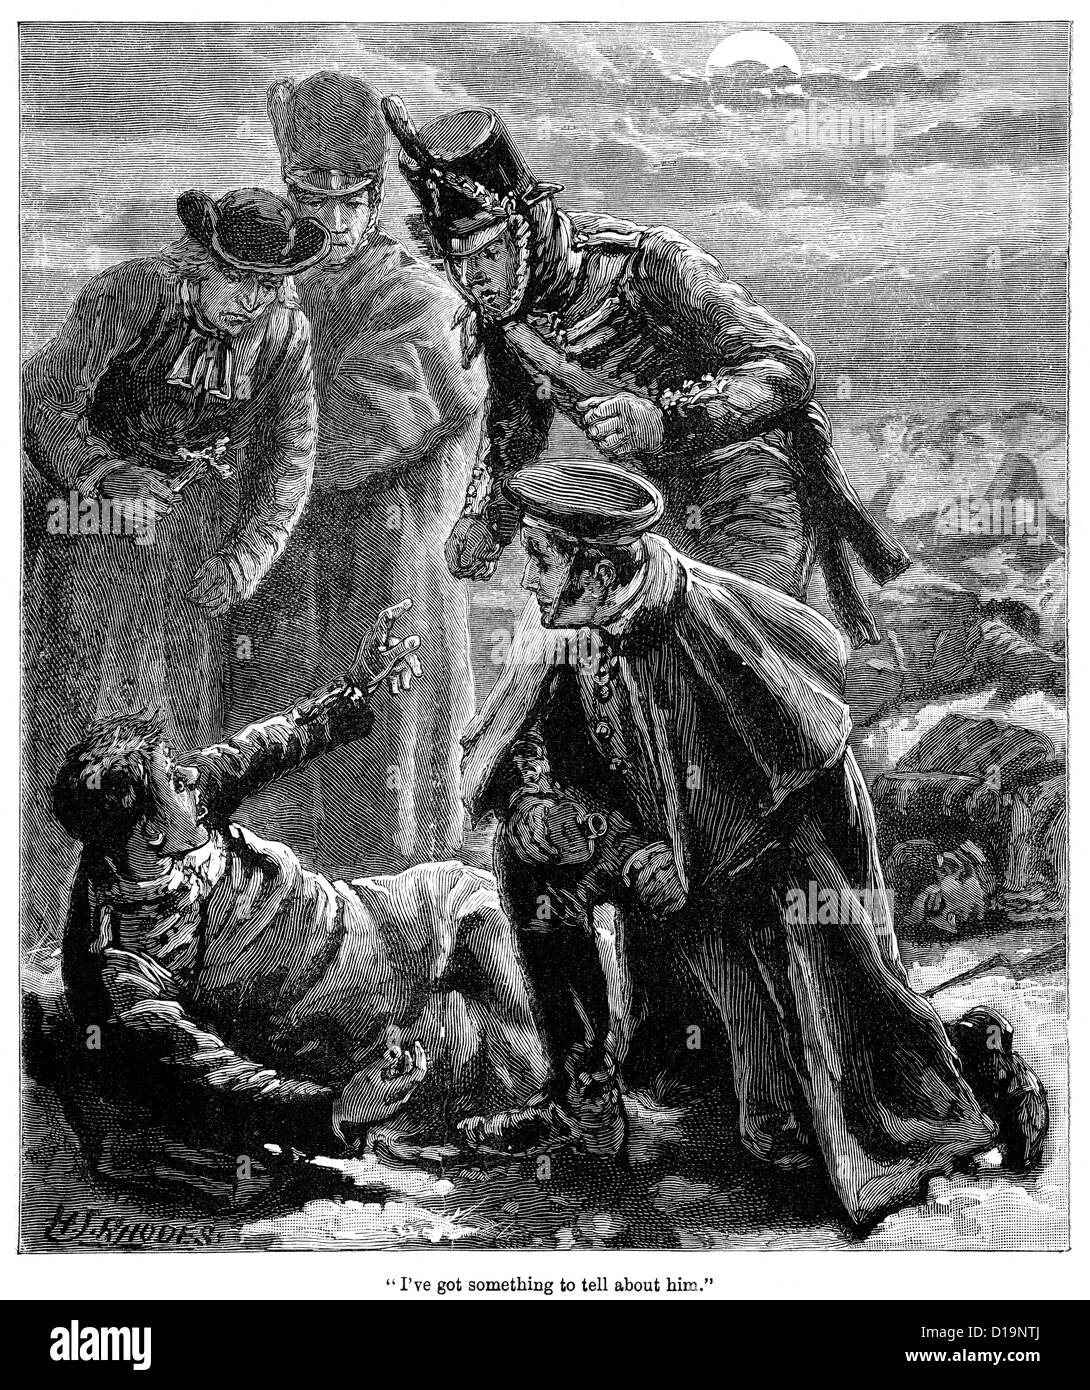 Victorian engraving of a wounded soldier from the Napoleonic Wars being given the last rites - Stock Image